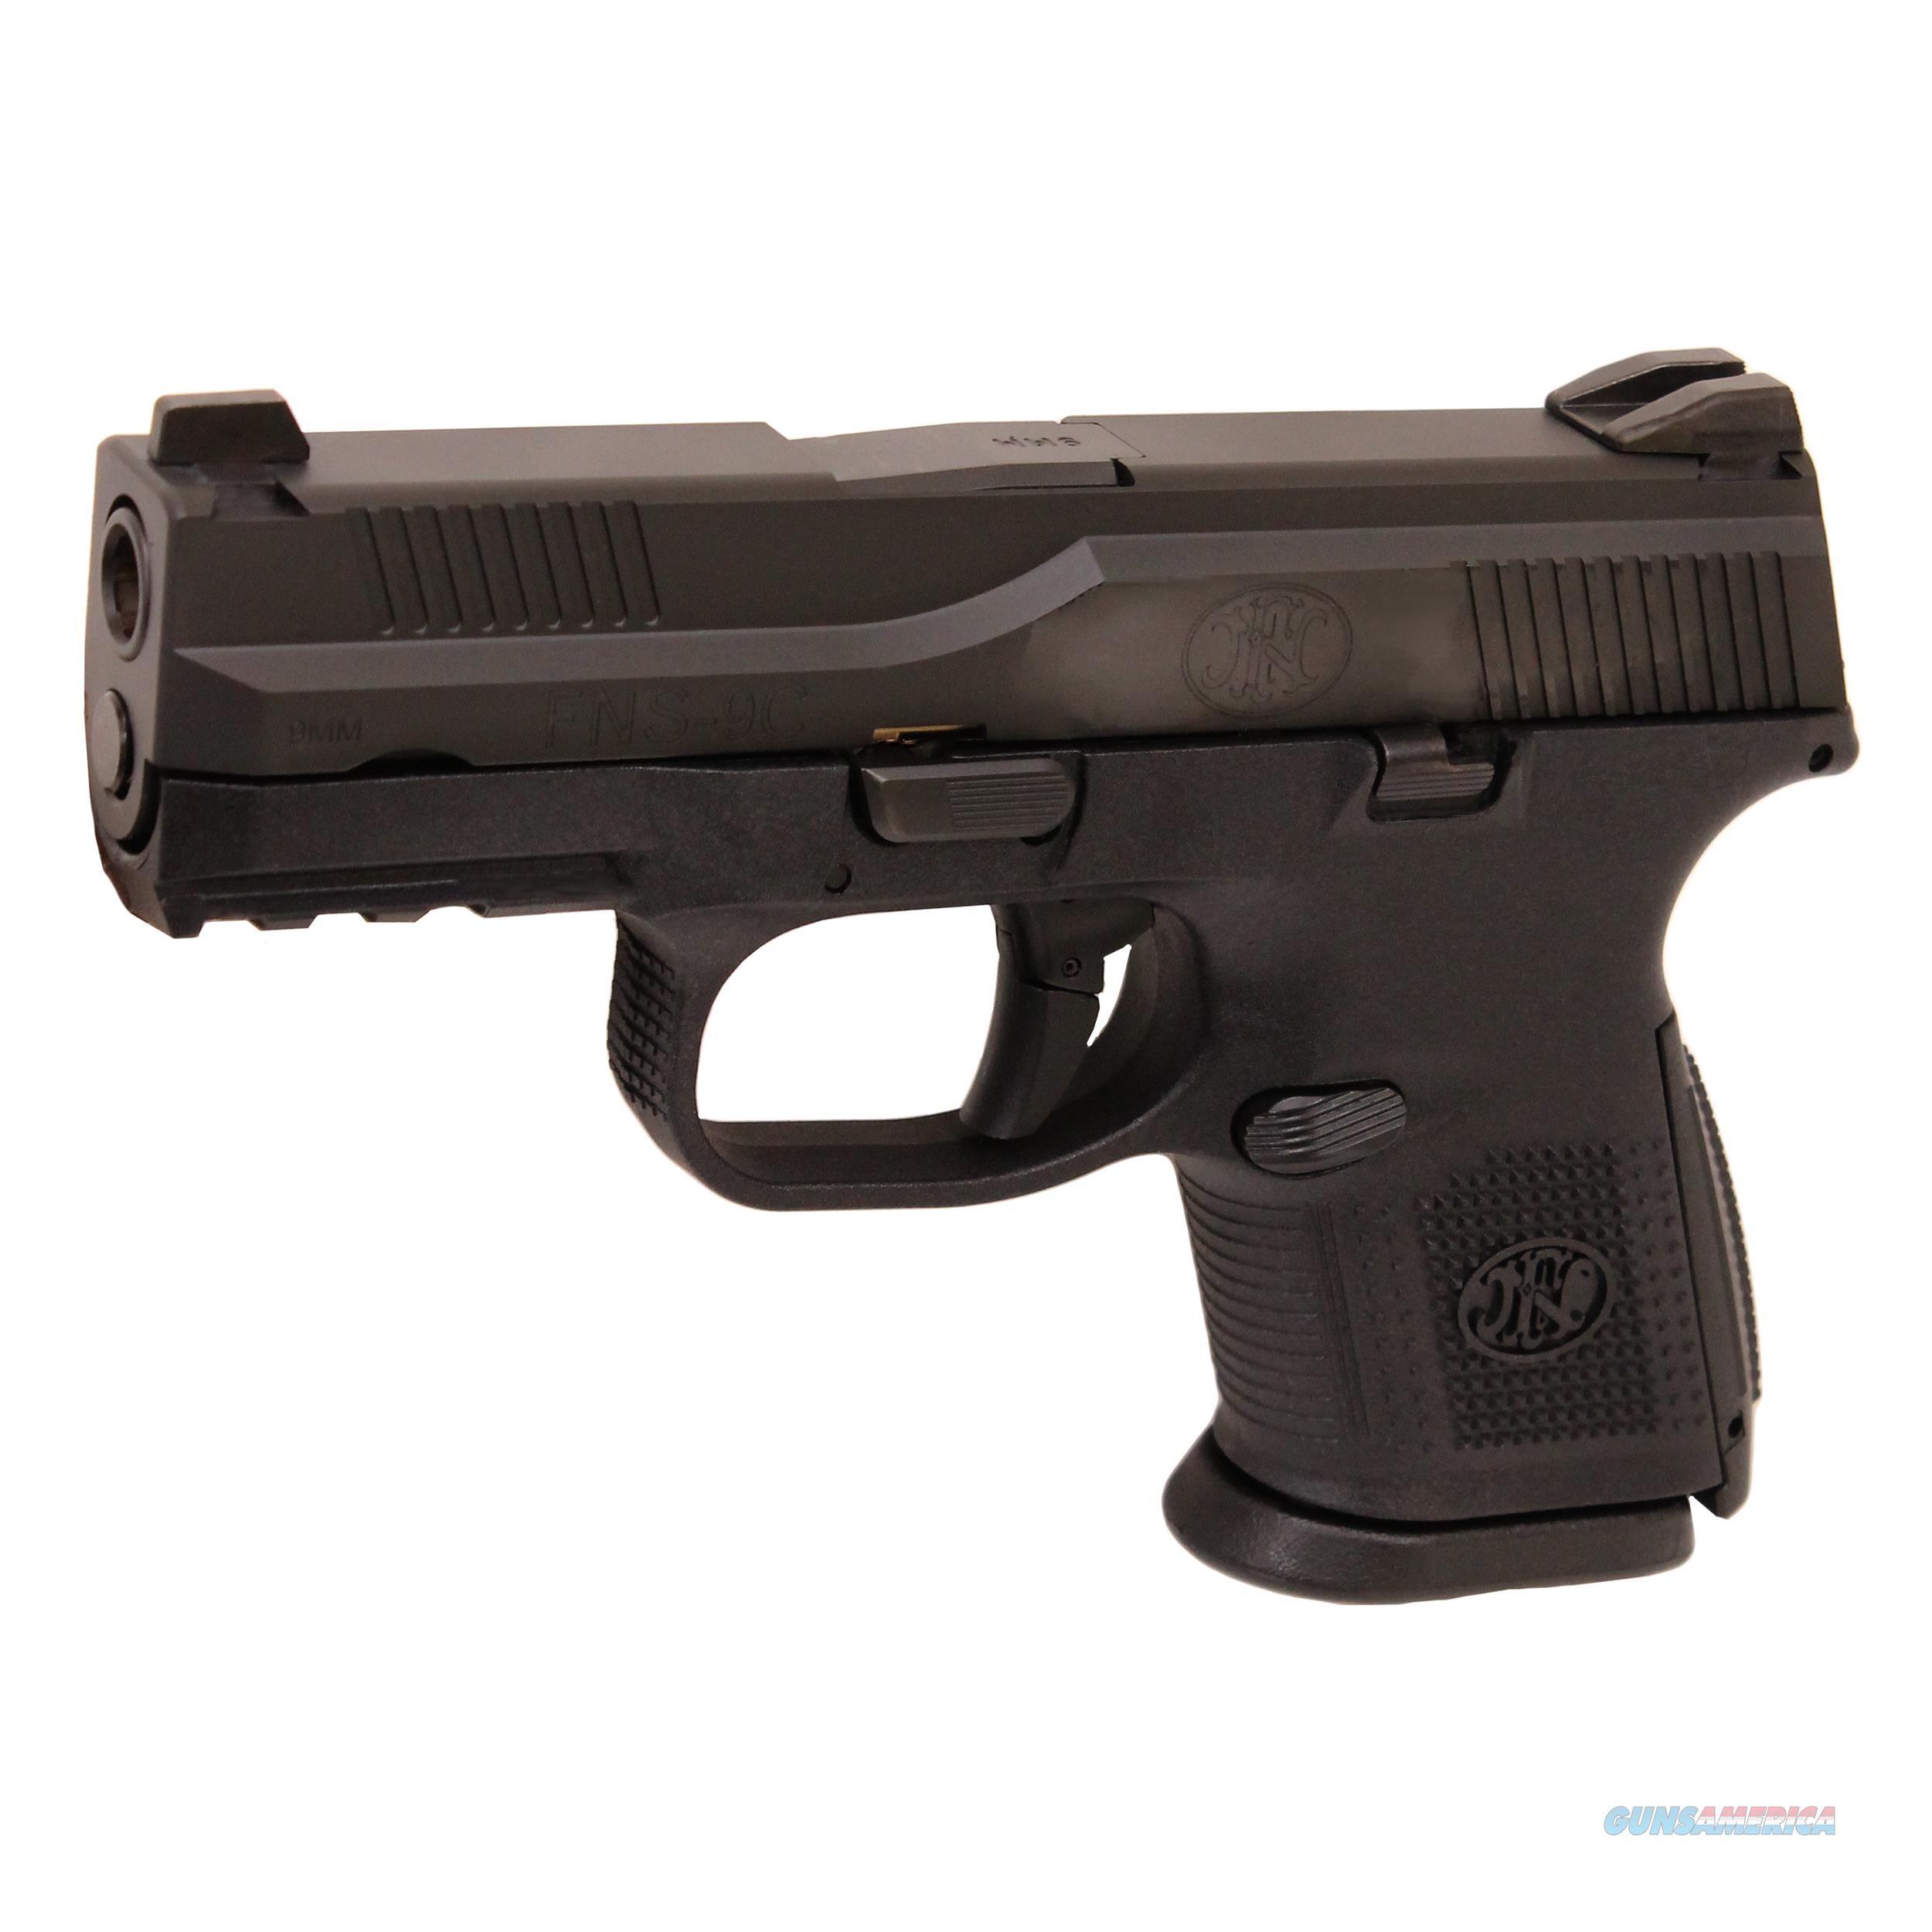 "FNLE FNS-9C Pistol 9mm, 3.60"" Barrel, 17 Rounds, Black  Guns > Pistols > FNH - Fabrique Nationale (FN) Pistols > FNS"